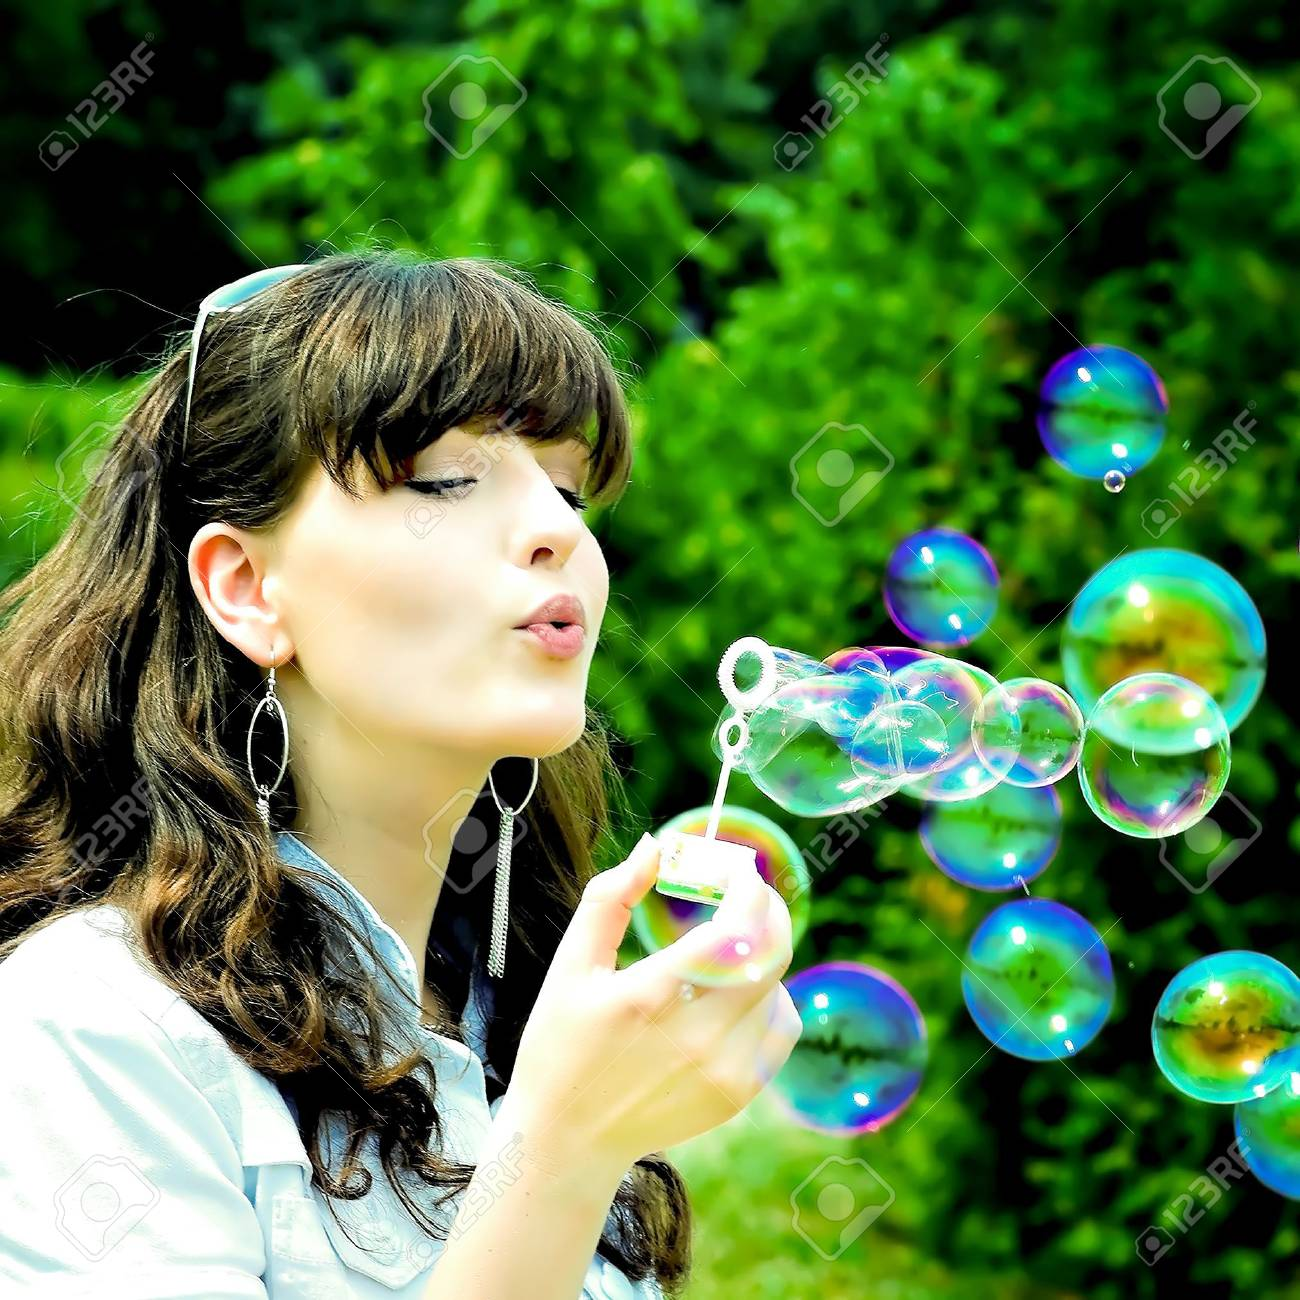 Young girl blowing soap bubbles in summer green park Stock Photo - 5887039